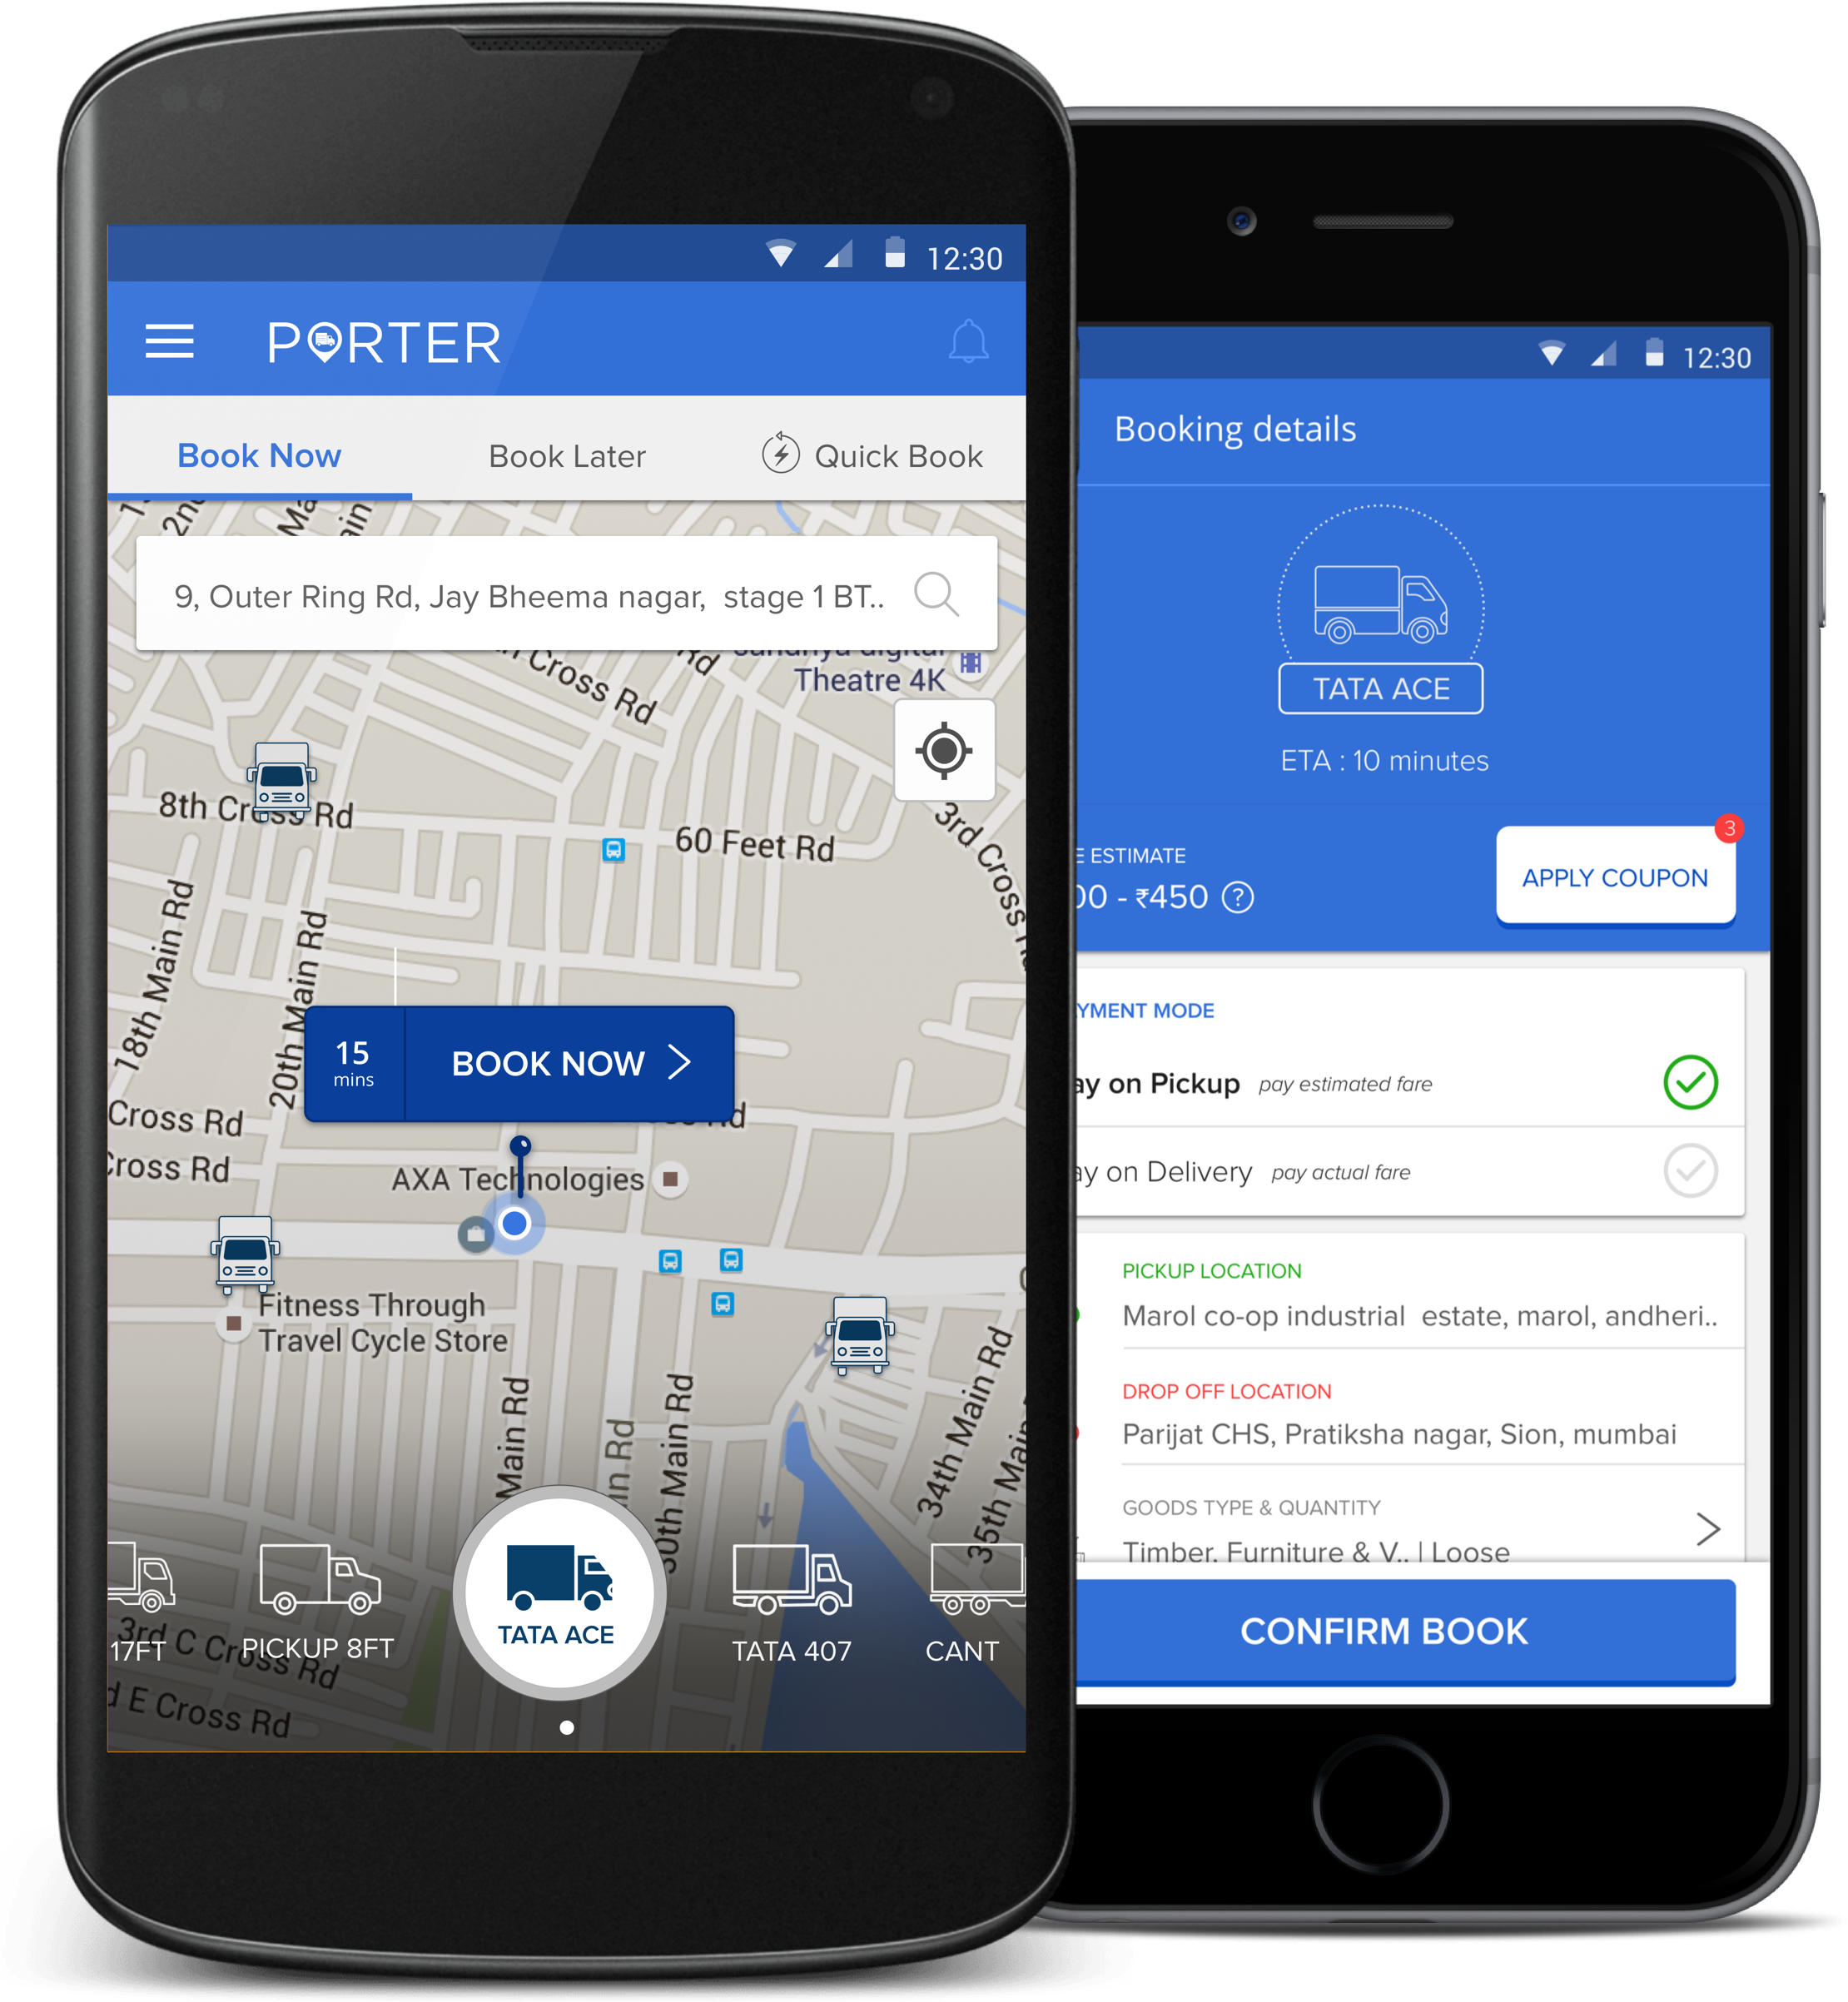 Porter App for online truck booking